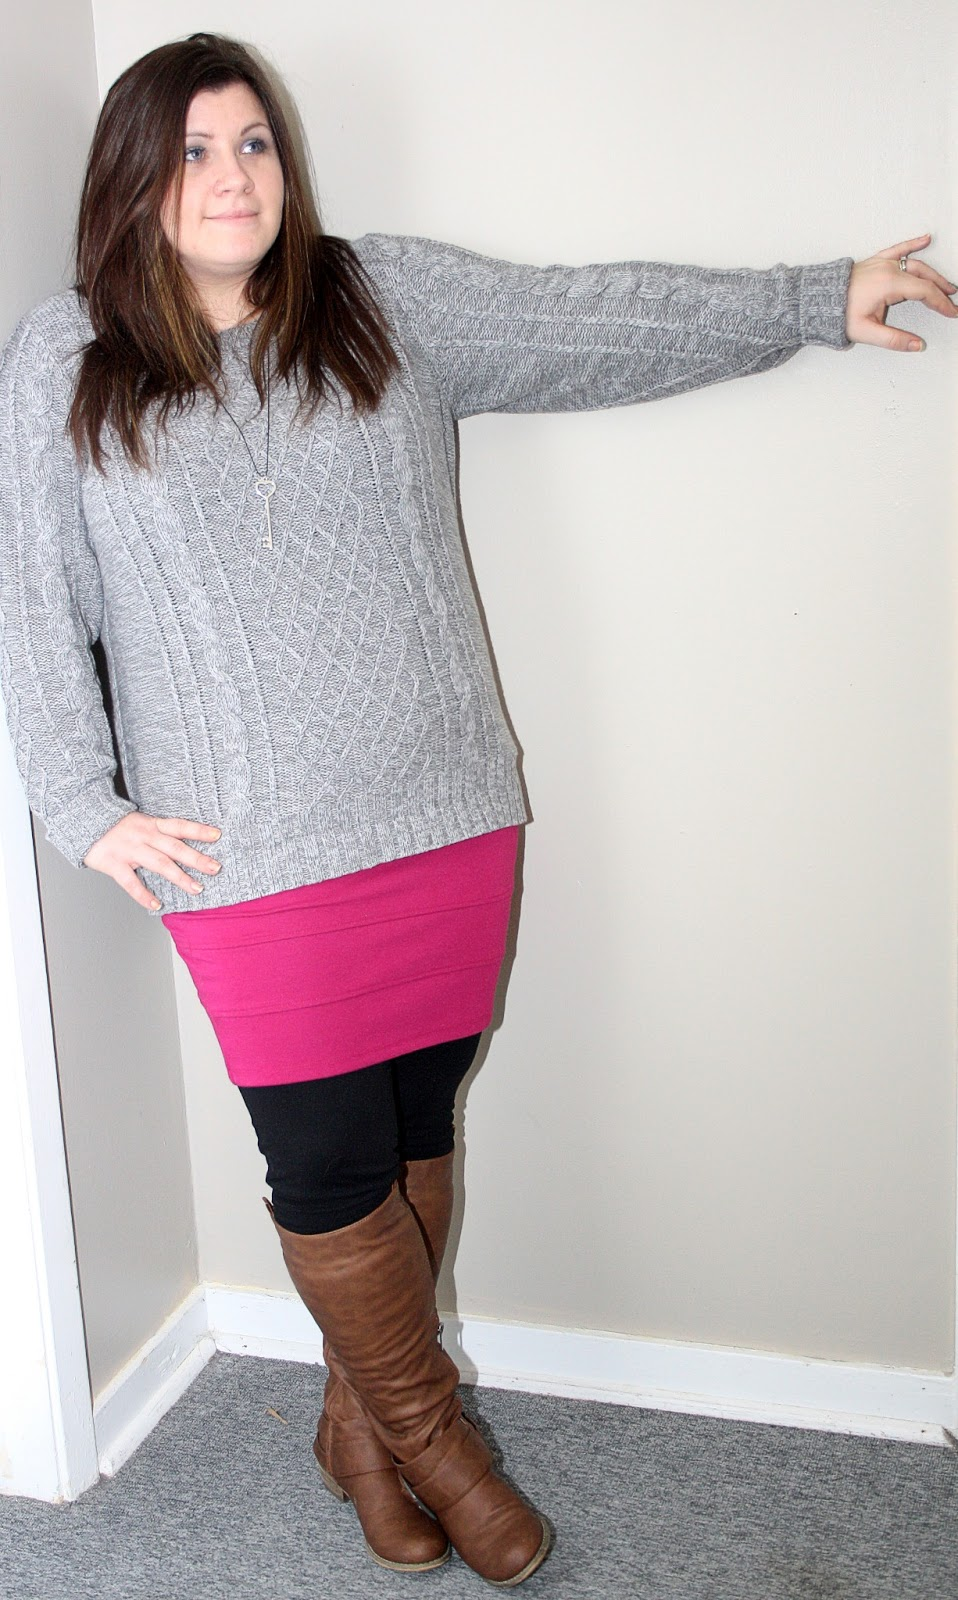 april pink beauty: curvy girl fashion - cozy winter casual